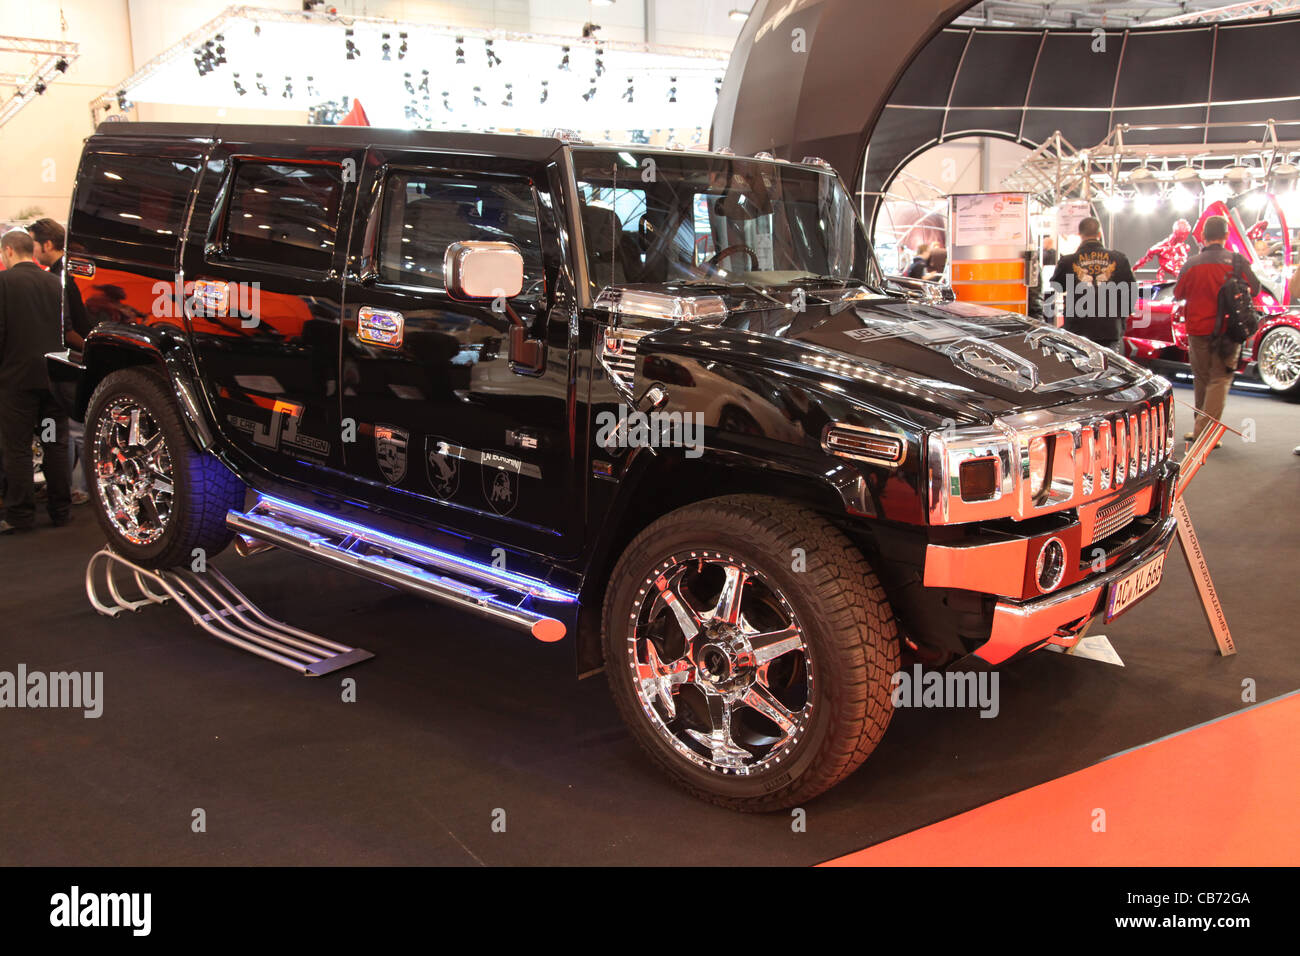 Hummer H2 Custom shown at the Essen Motor Show in Essen, Germany, on November 29, 2011 - Stock Image